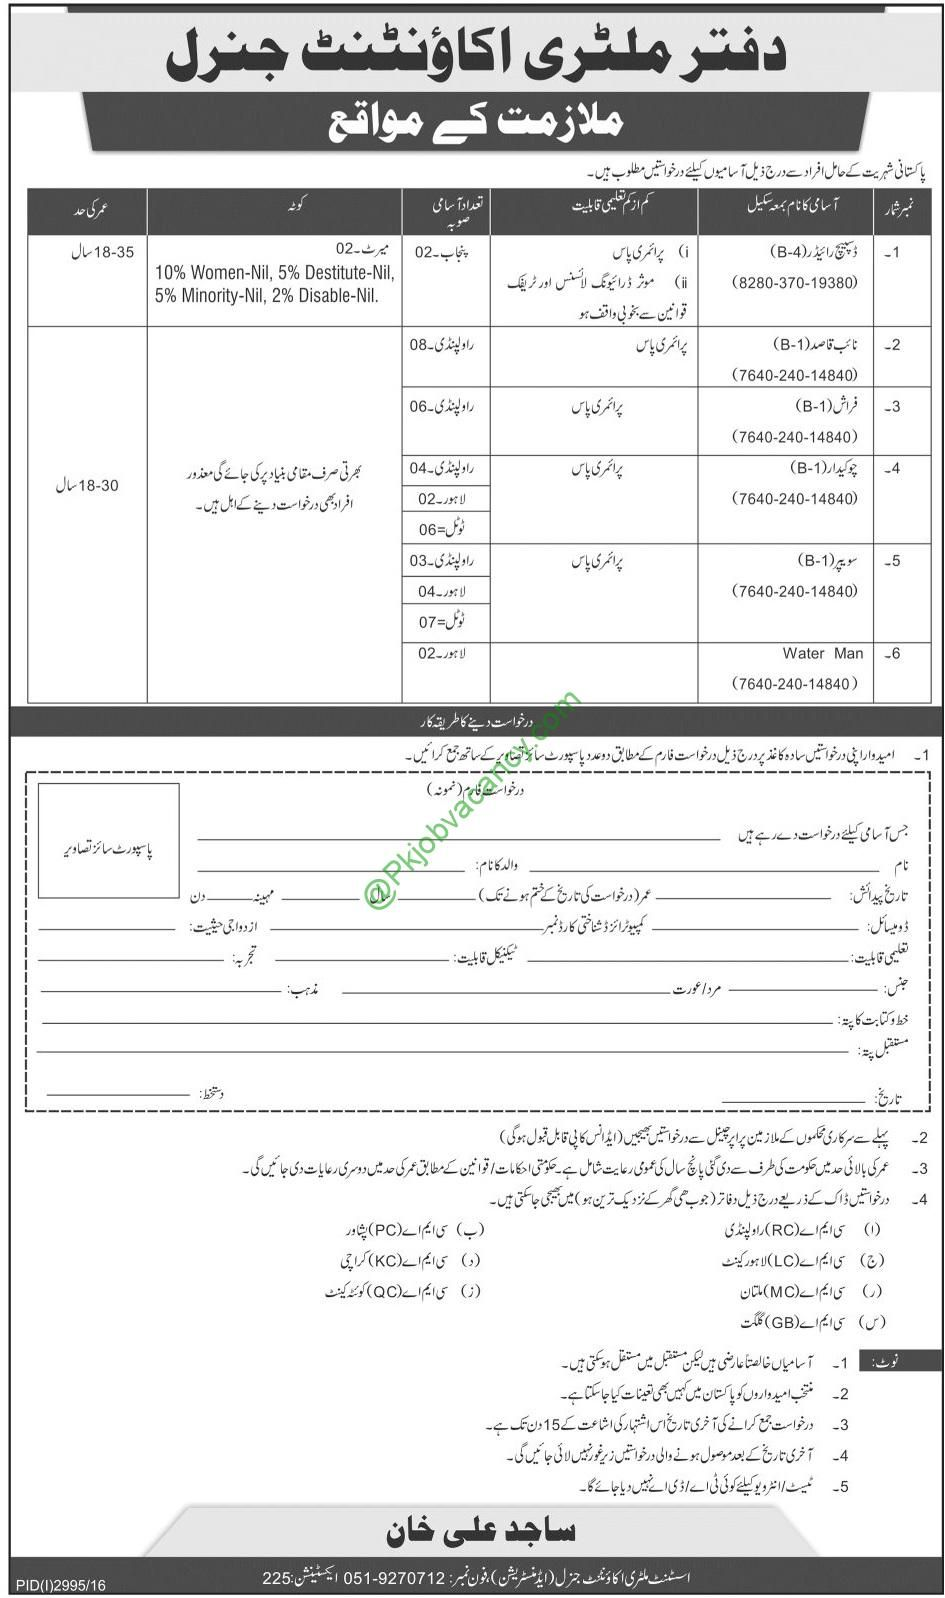 Military accountant general office december 2016 jobs application military accountant general office december 2016 jobs application form download falaconquin